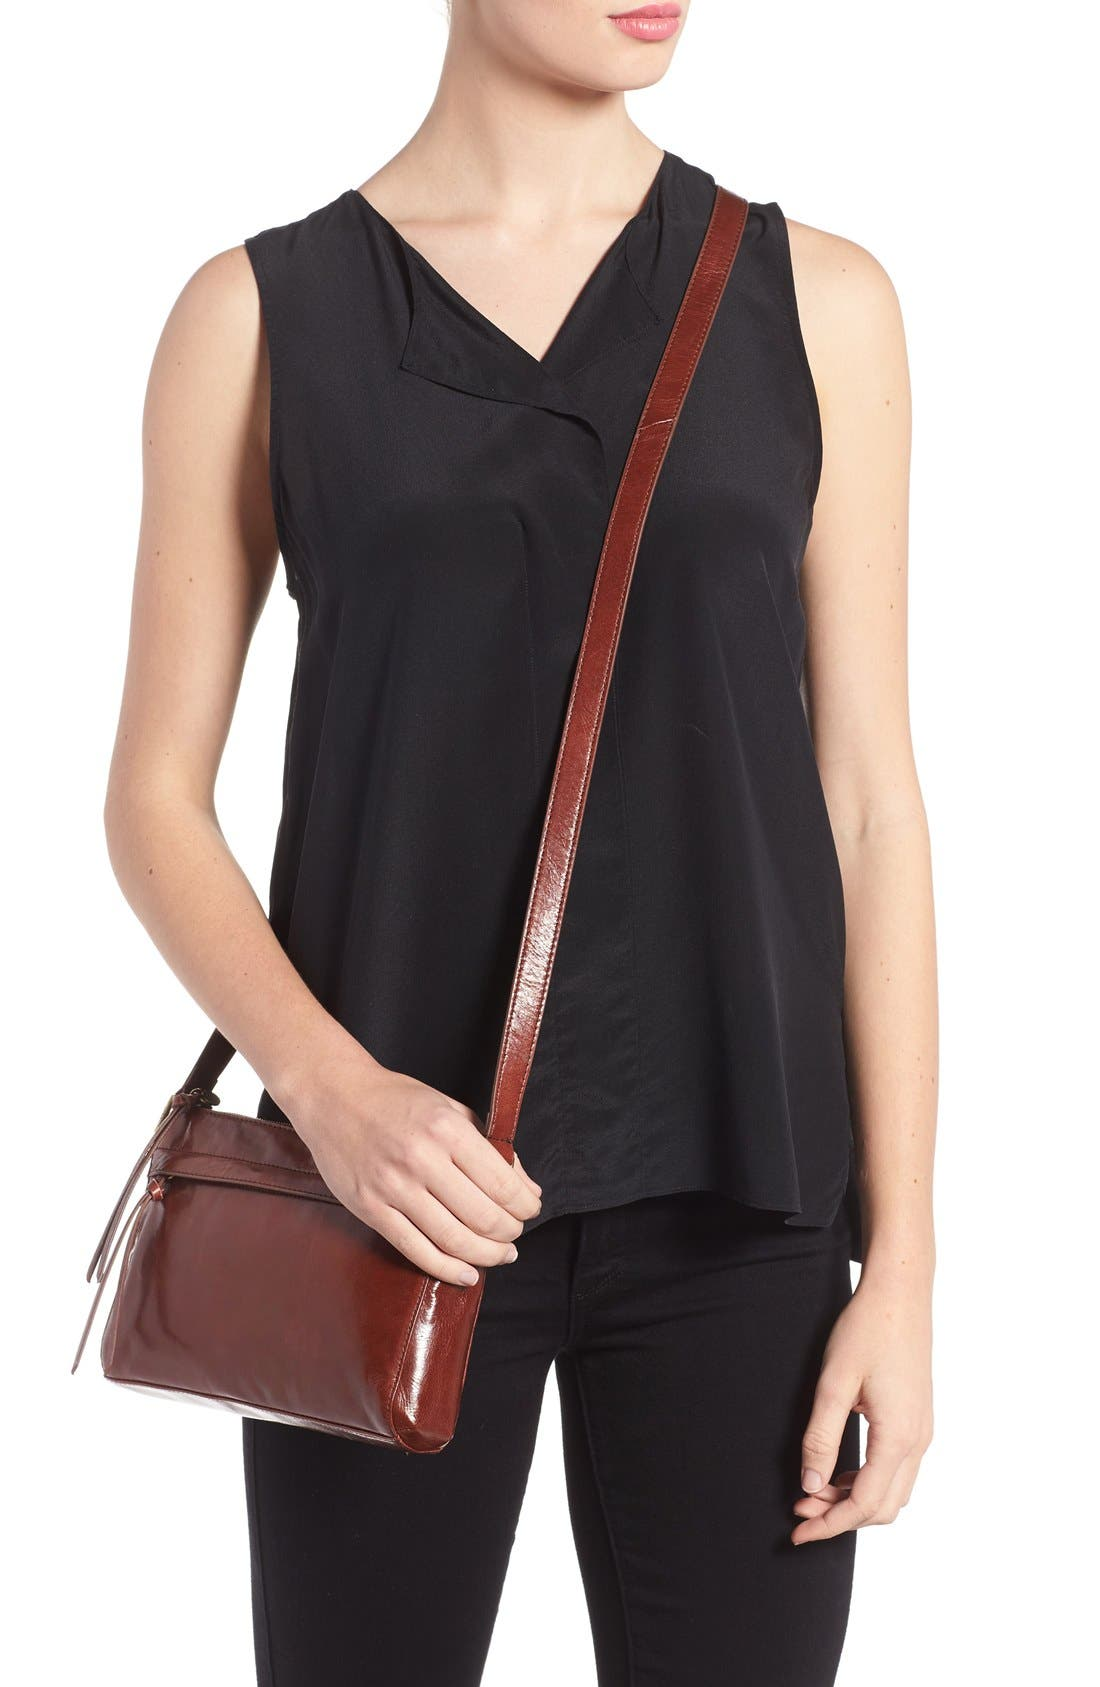 Tobey Leather Crossbody Bag,                             Alternate thumbnail 27, color,